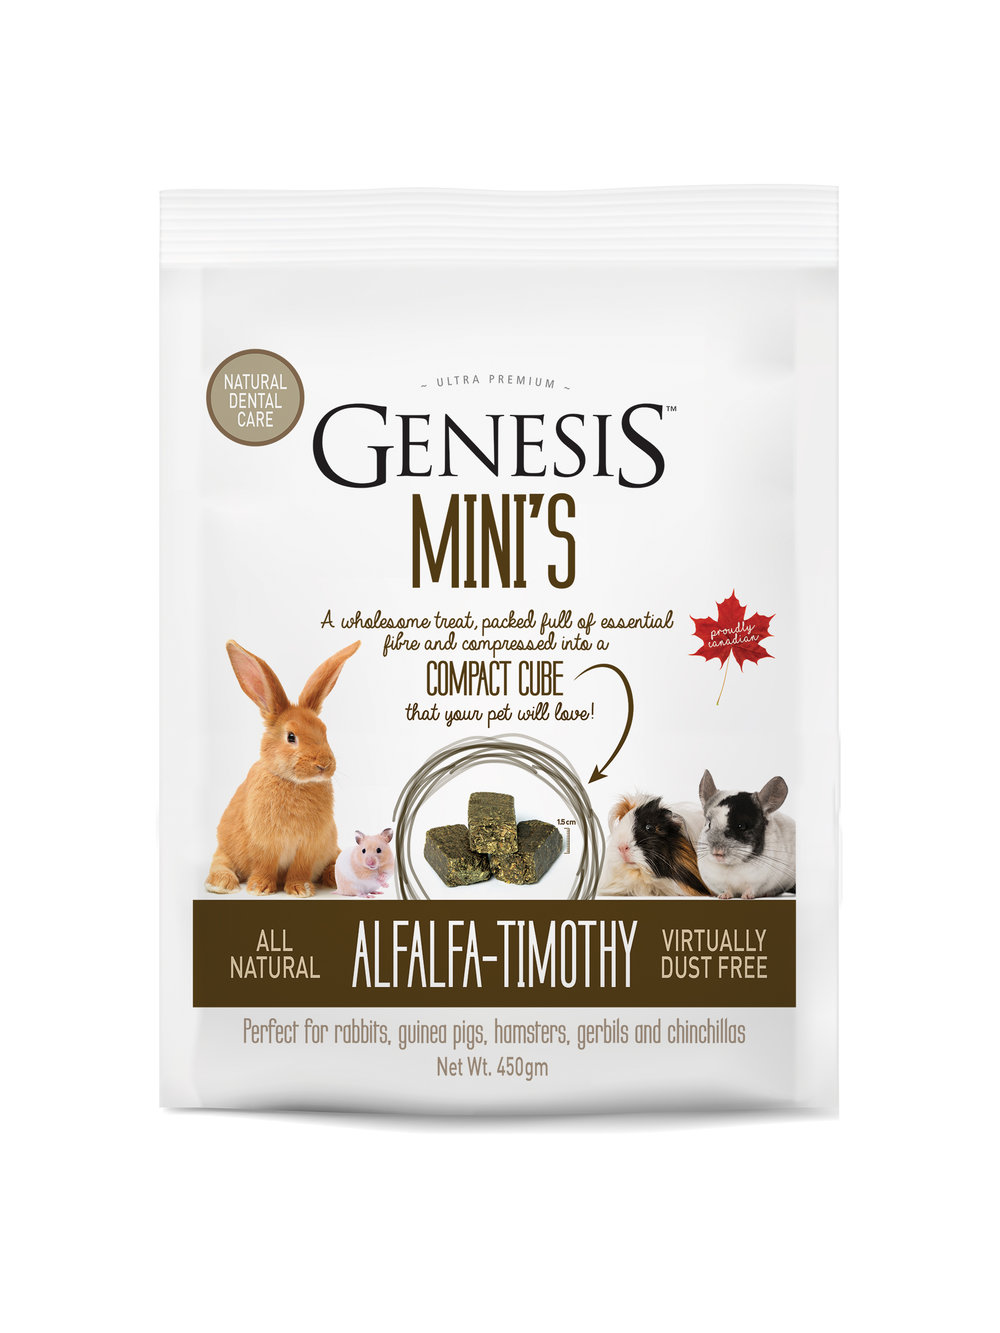 Genesis Mini's - Alfalfa-Timothy - the perfect all natural, wholesome treat, packed full of essential fibre and compressed into a compact cube that your pet will love.